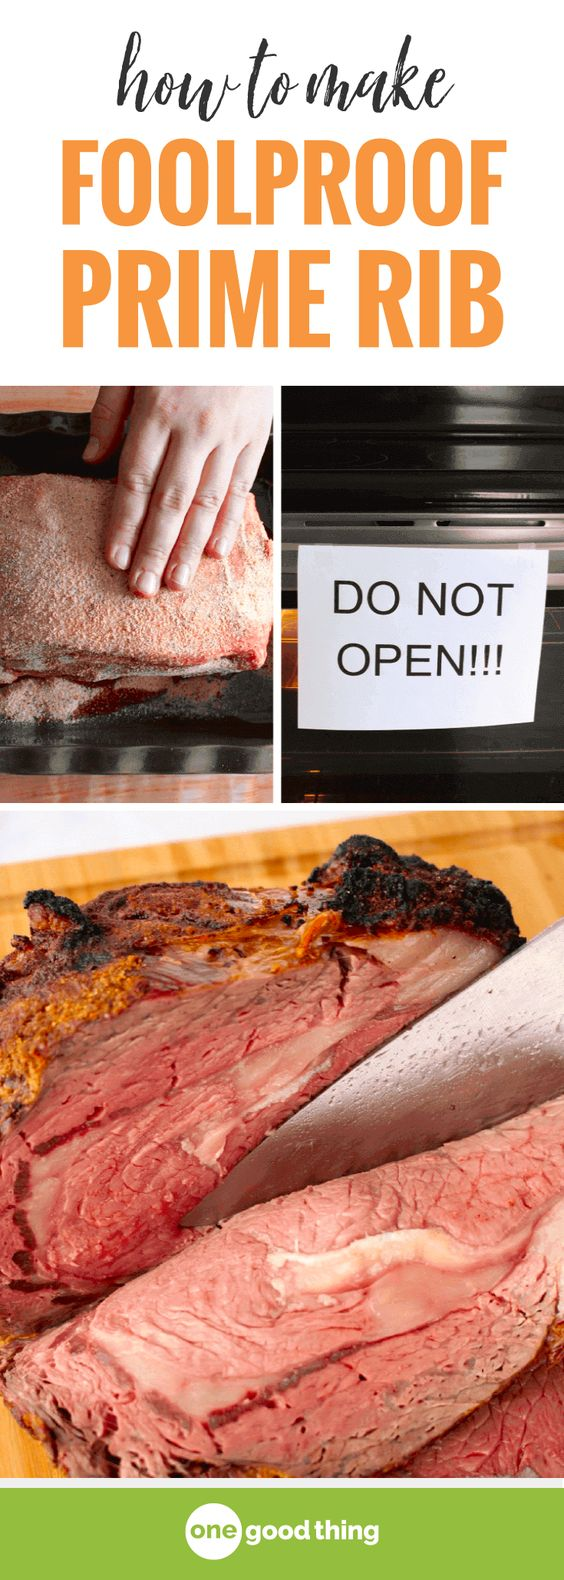 You CAN make prime rib, I promise! This method is foolproof, and the results are SO delicious. This prime rib will be the star of your holiday party!